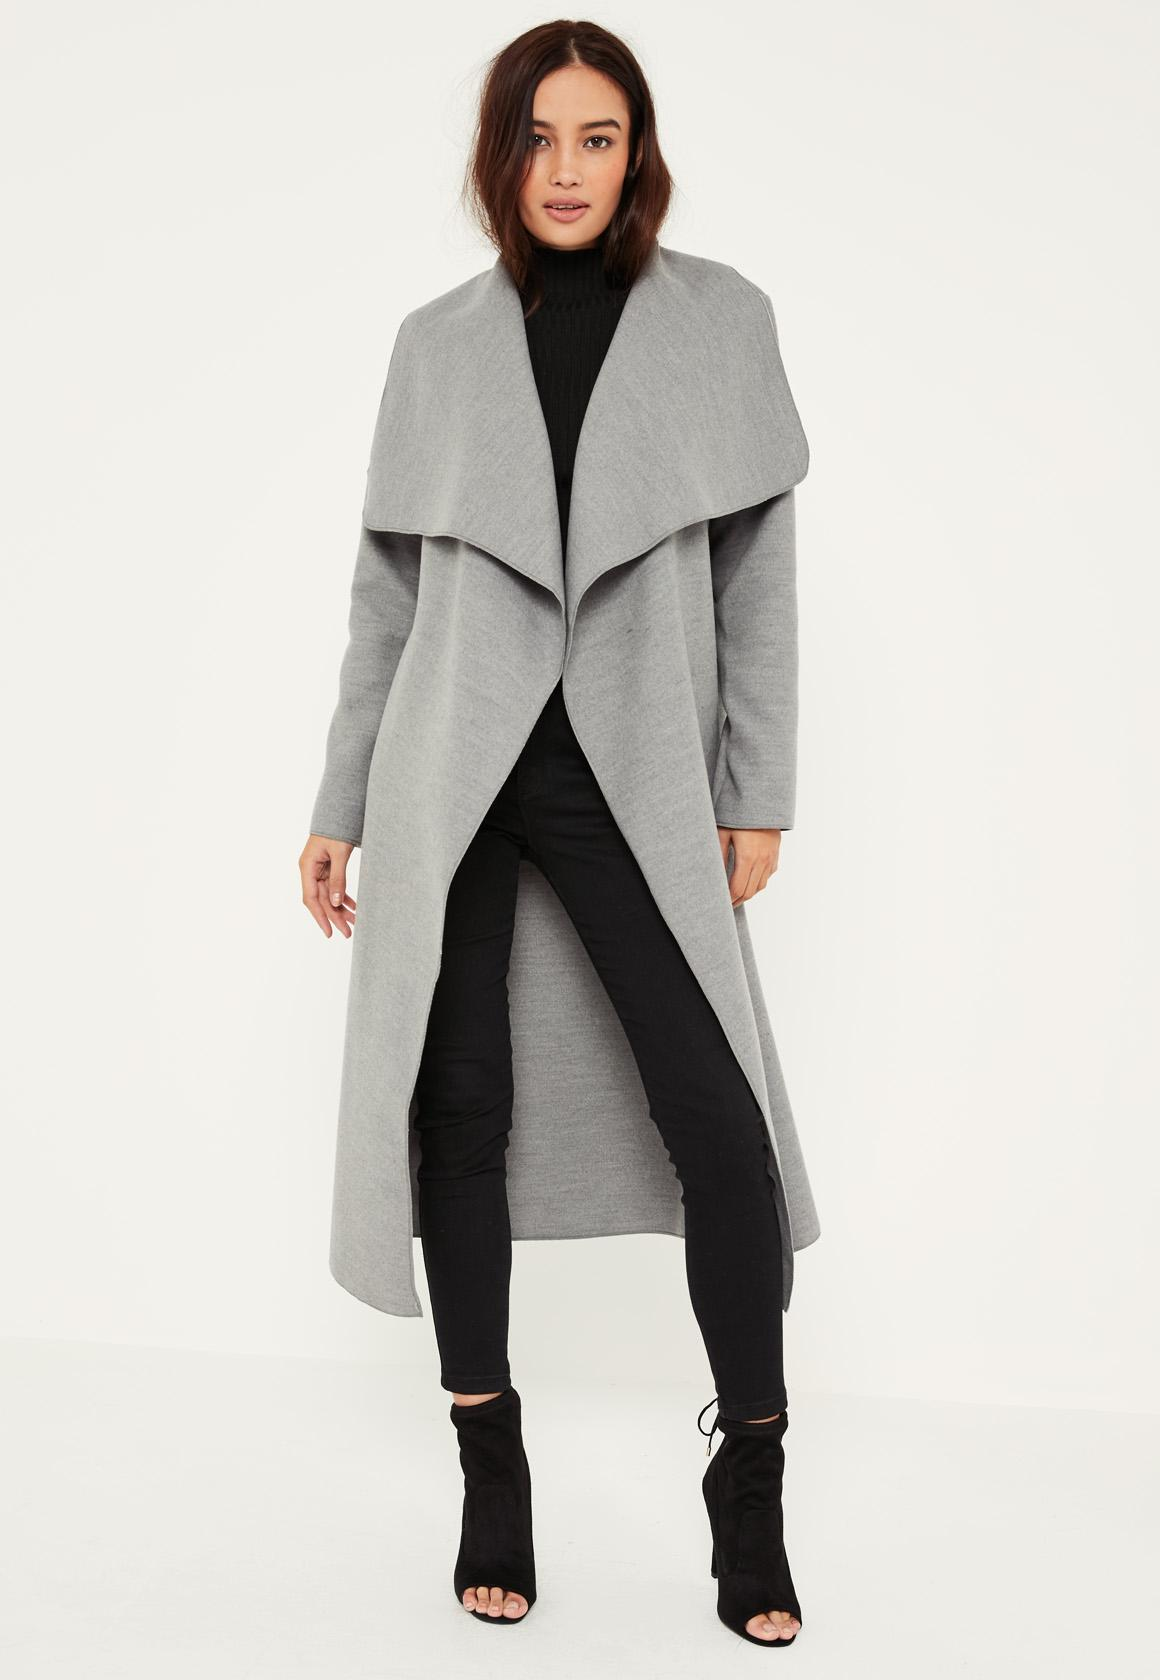 Duster Jackets & Coats for Women | Missguided